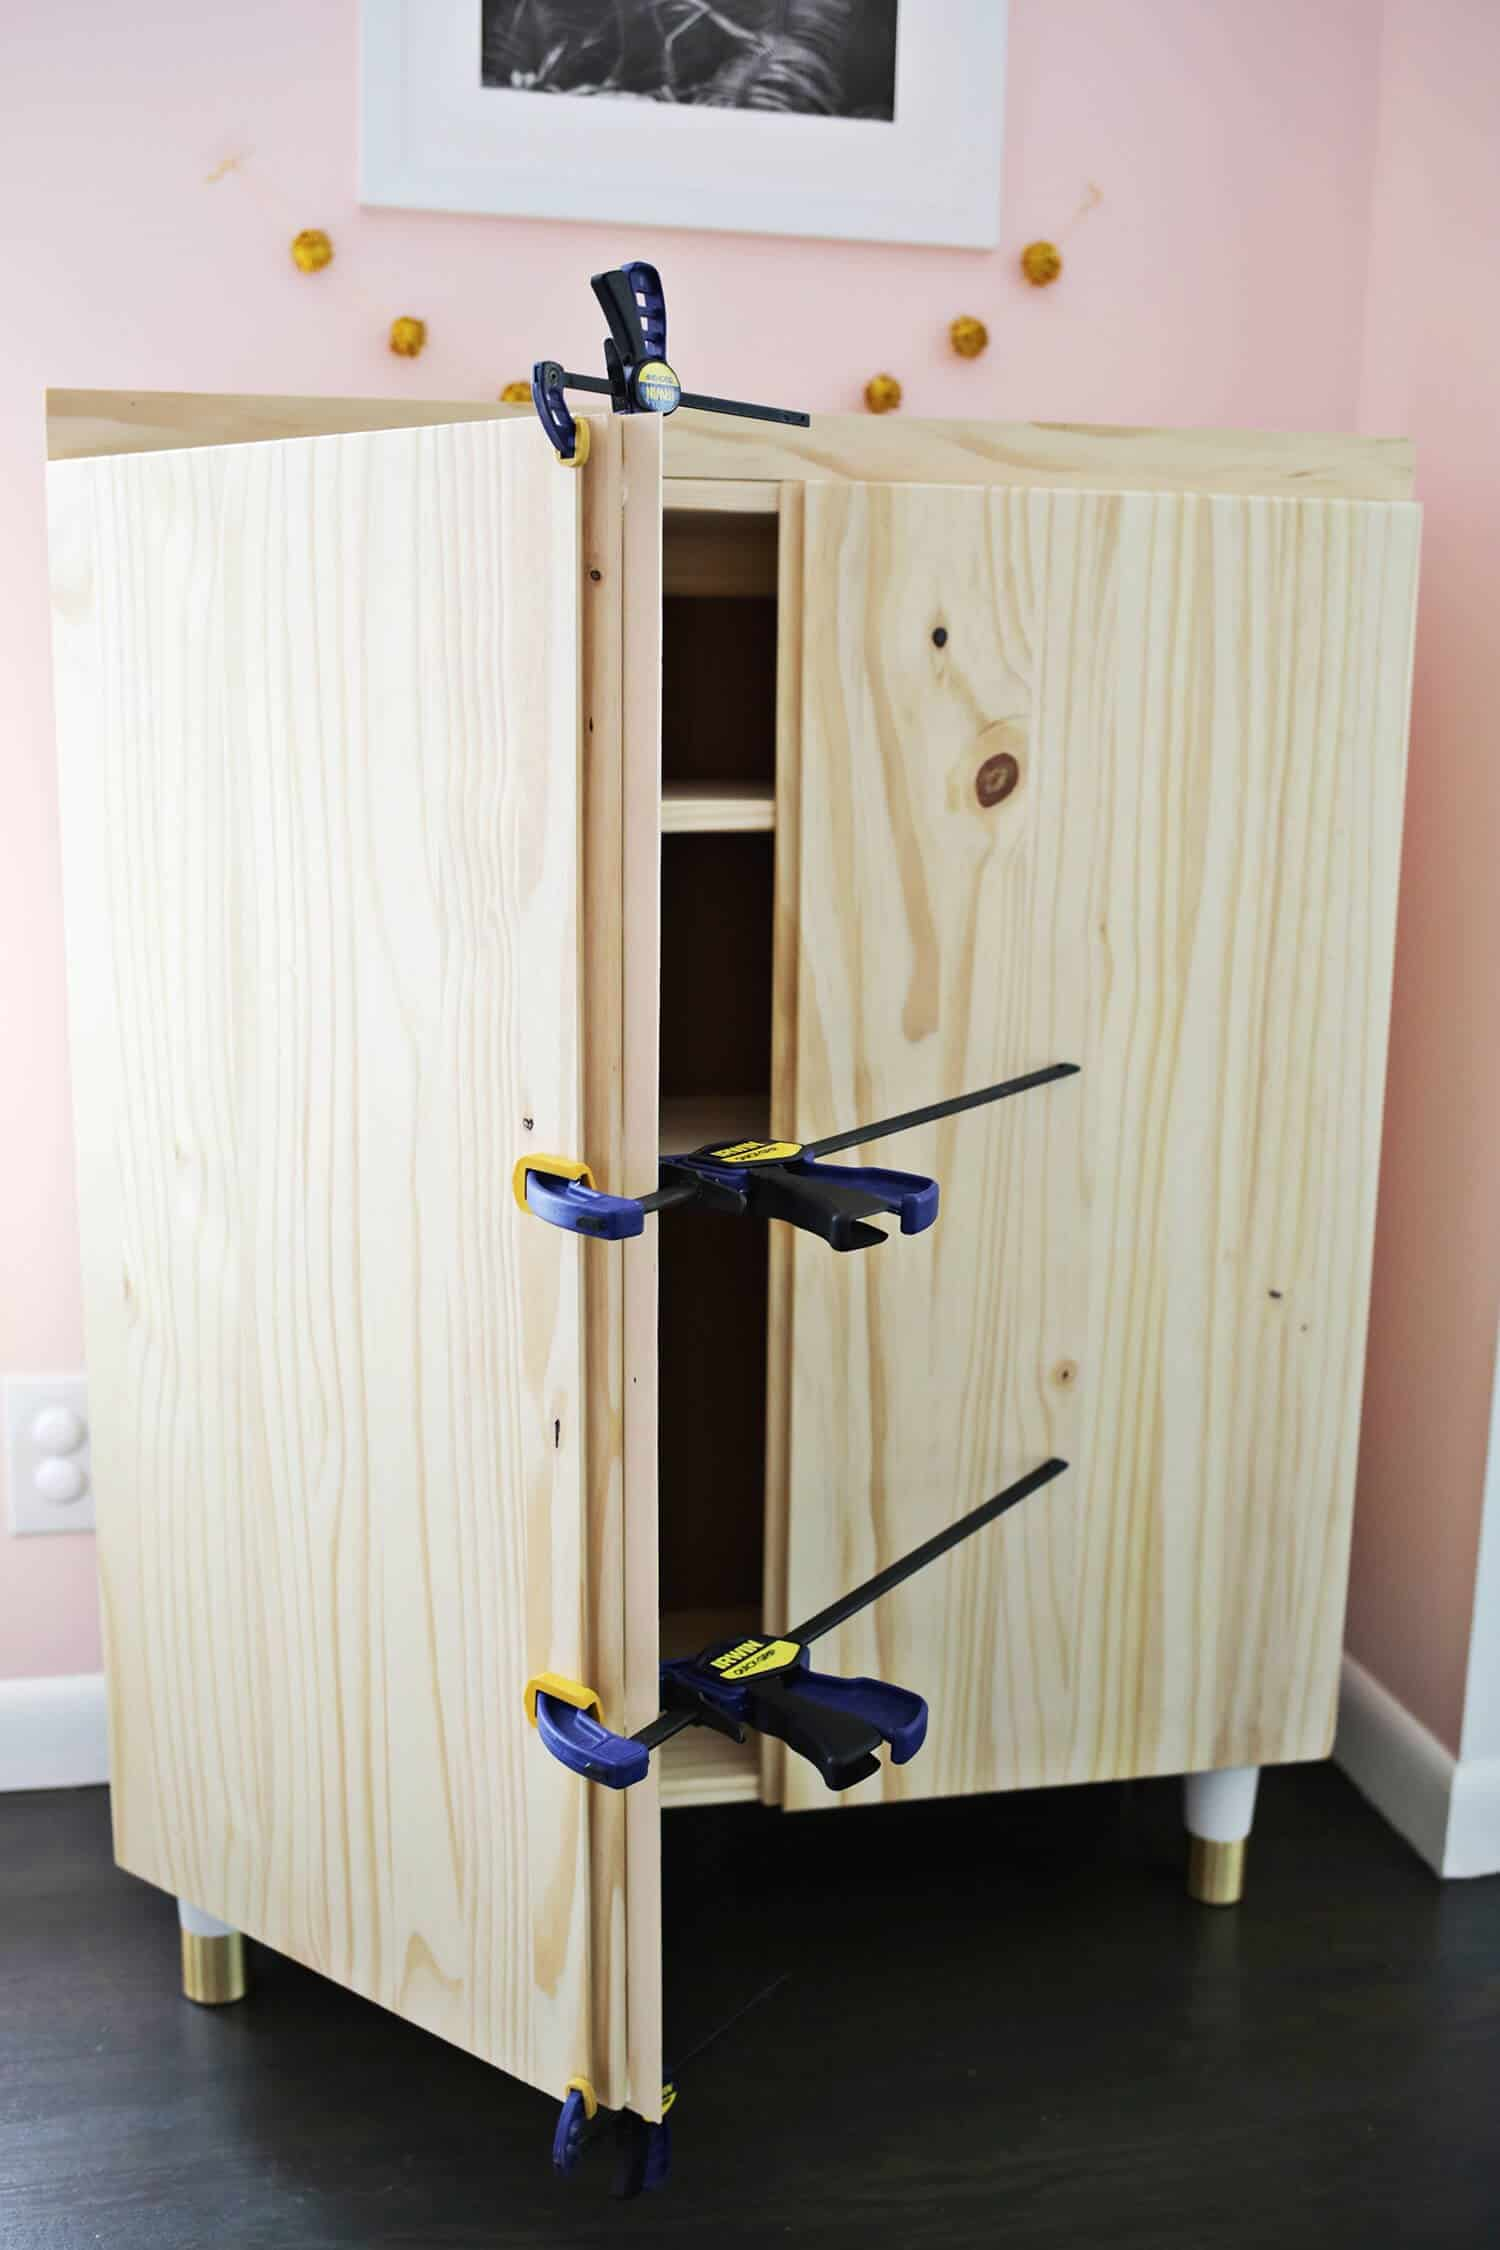 Superb Ikea Ivar Cabinet Hack Turned Into A Bar Cabinet A Download Free Architecture Designs Photstoregrimeyleaguecom